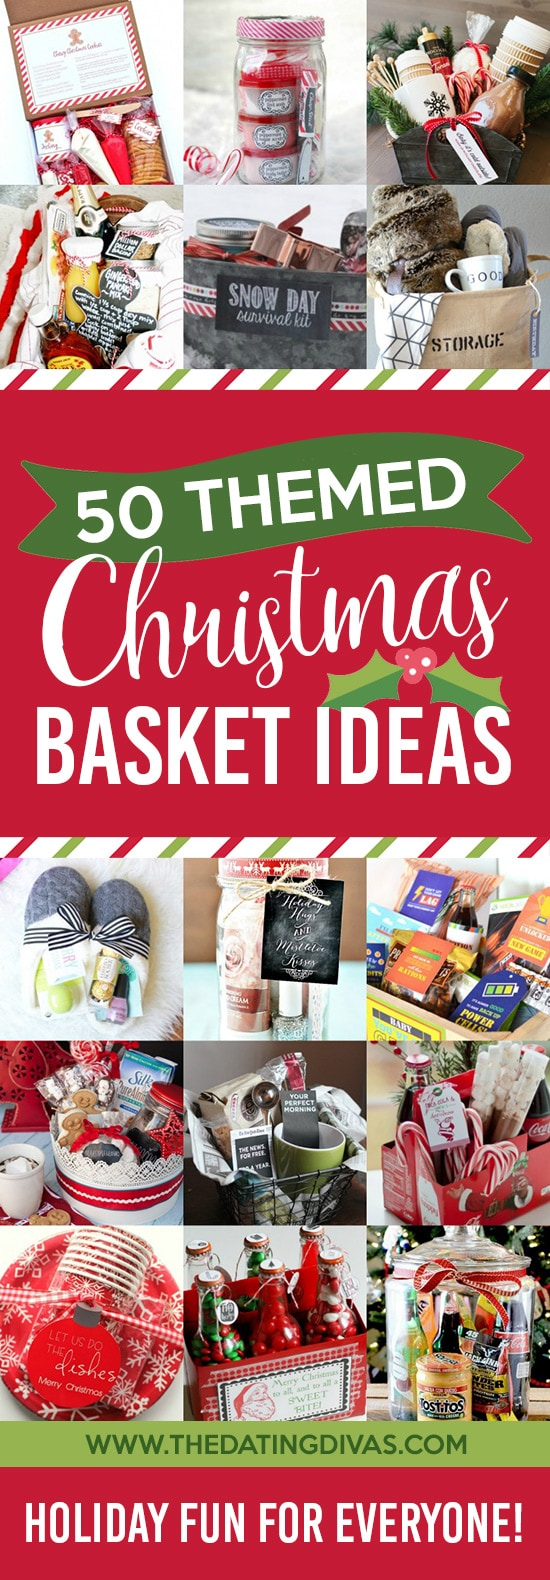 Christmas Gift Baskets Ideas.Christmas Gift Basket Ideas For Everyone The Dating Divas